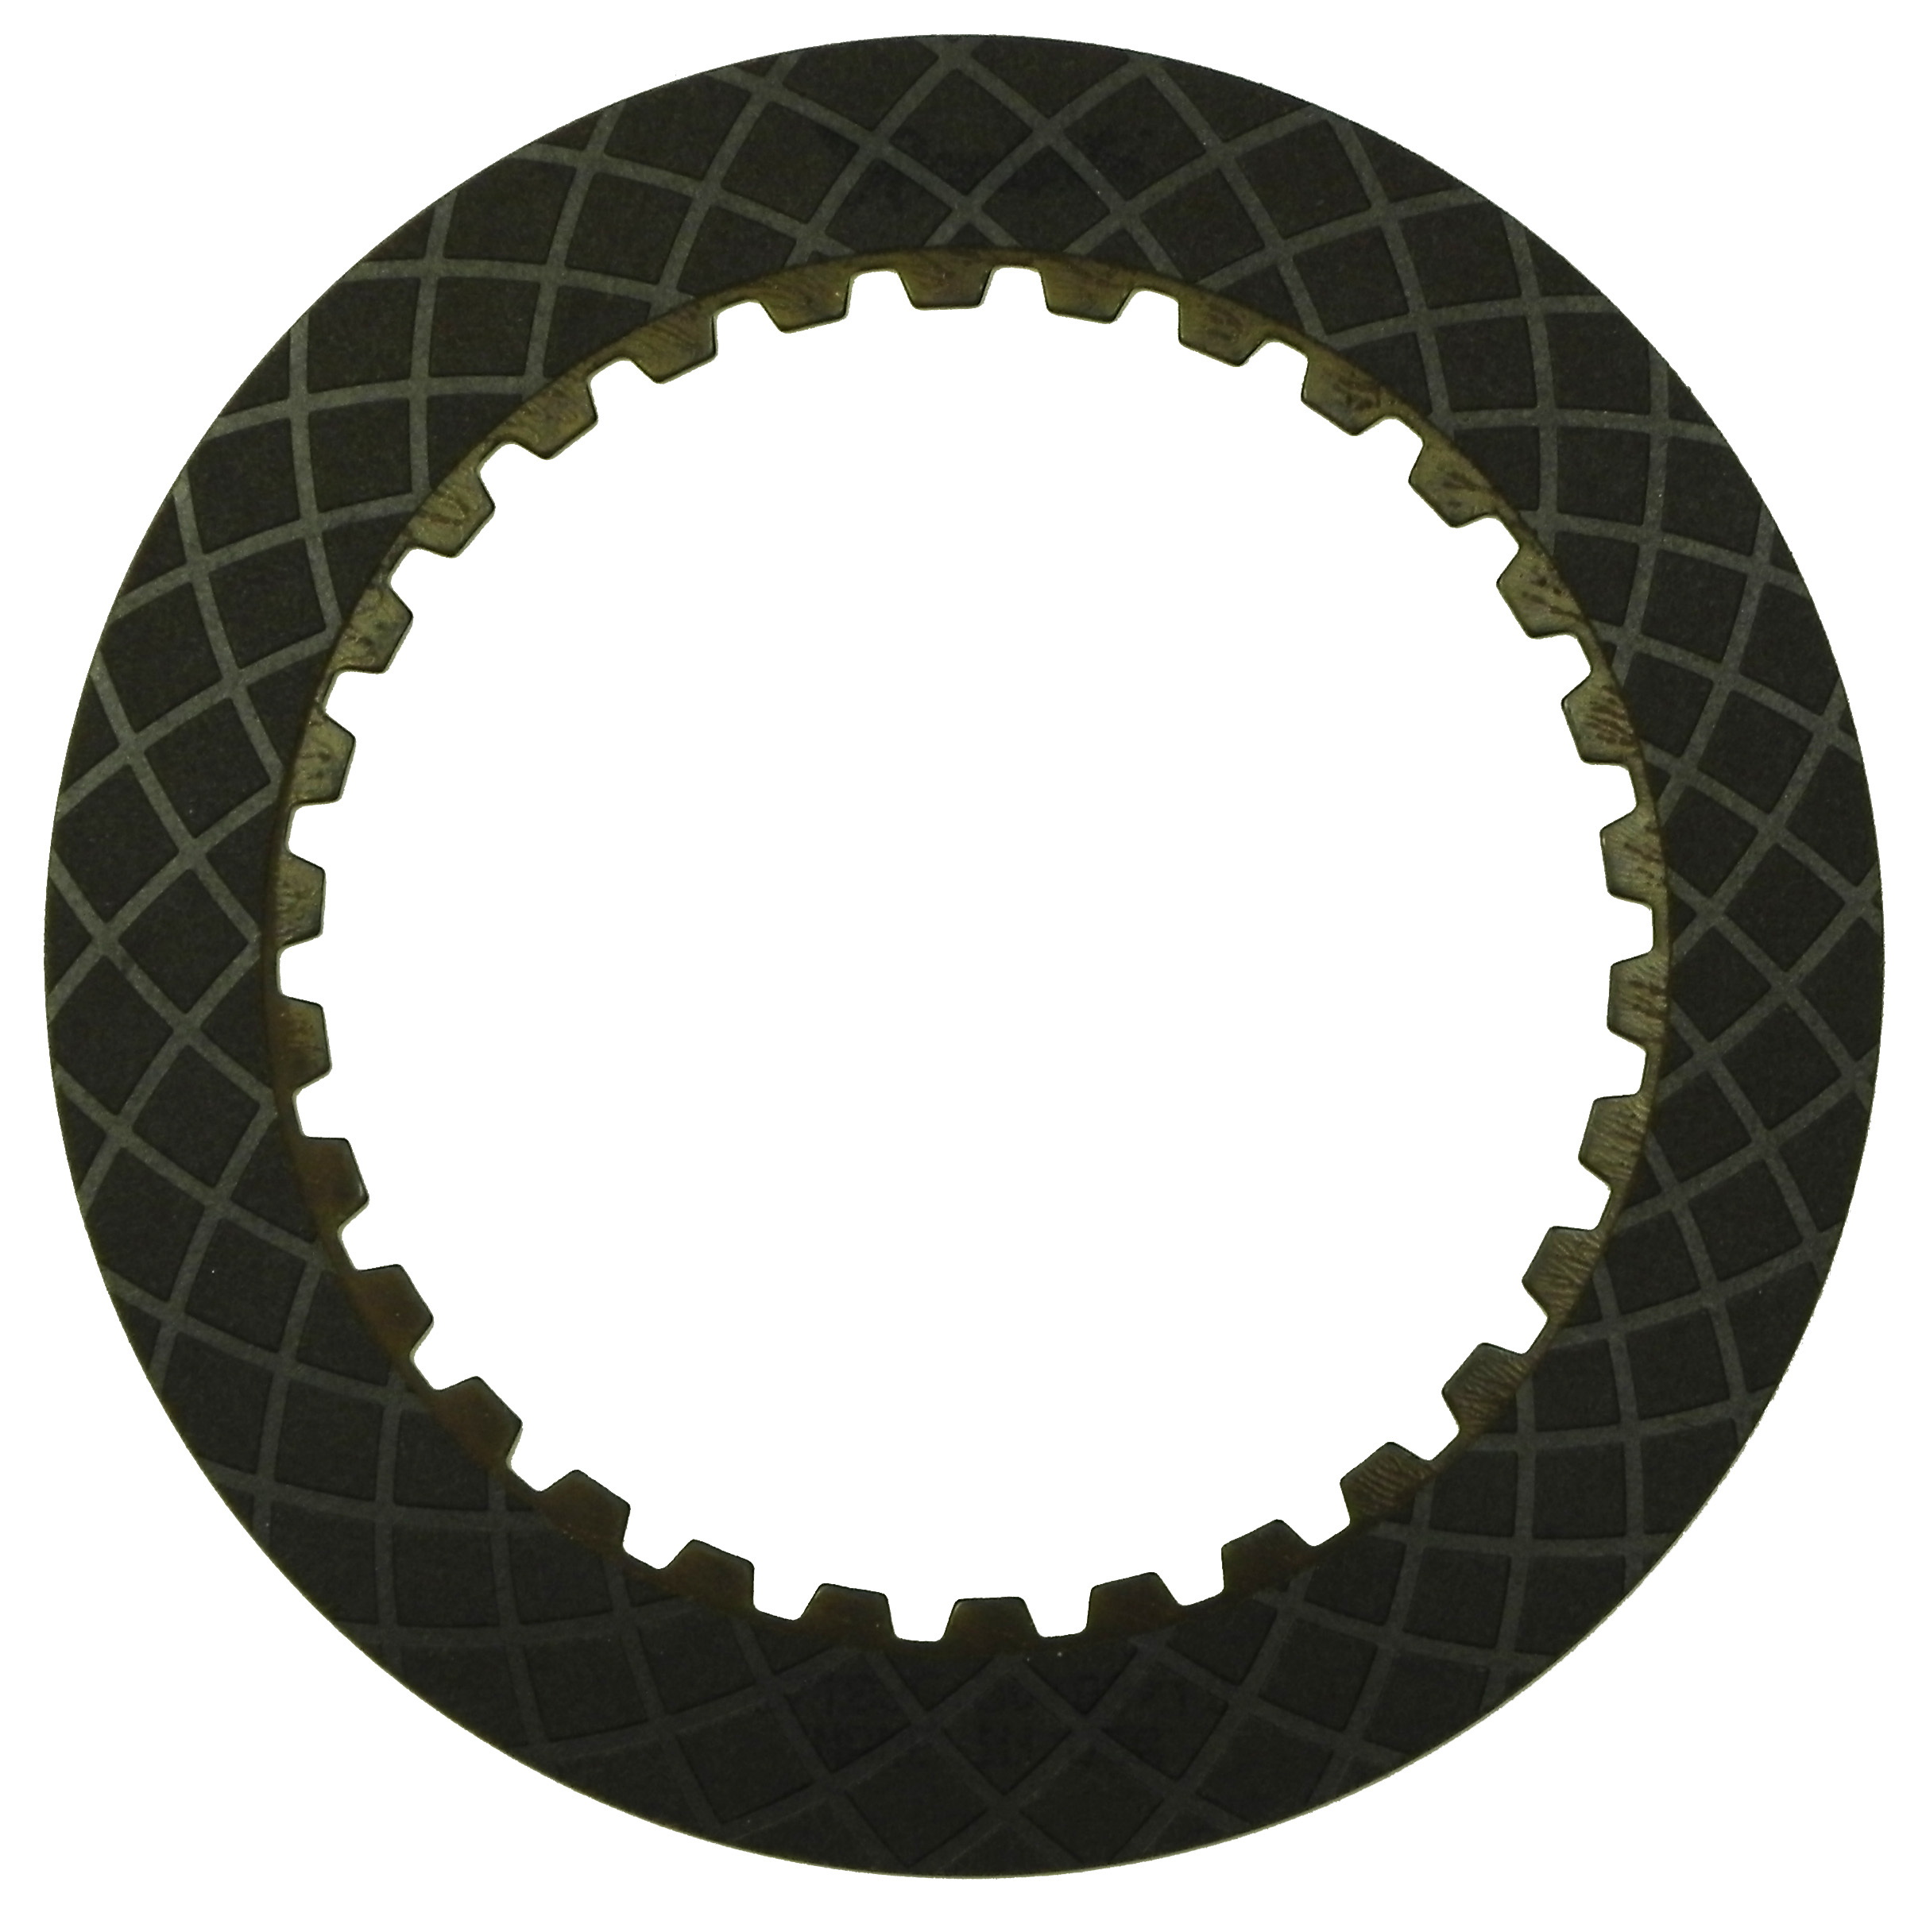 R571835 | 2000-2005 Friction Clutch Plate GPX 2nd GPX